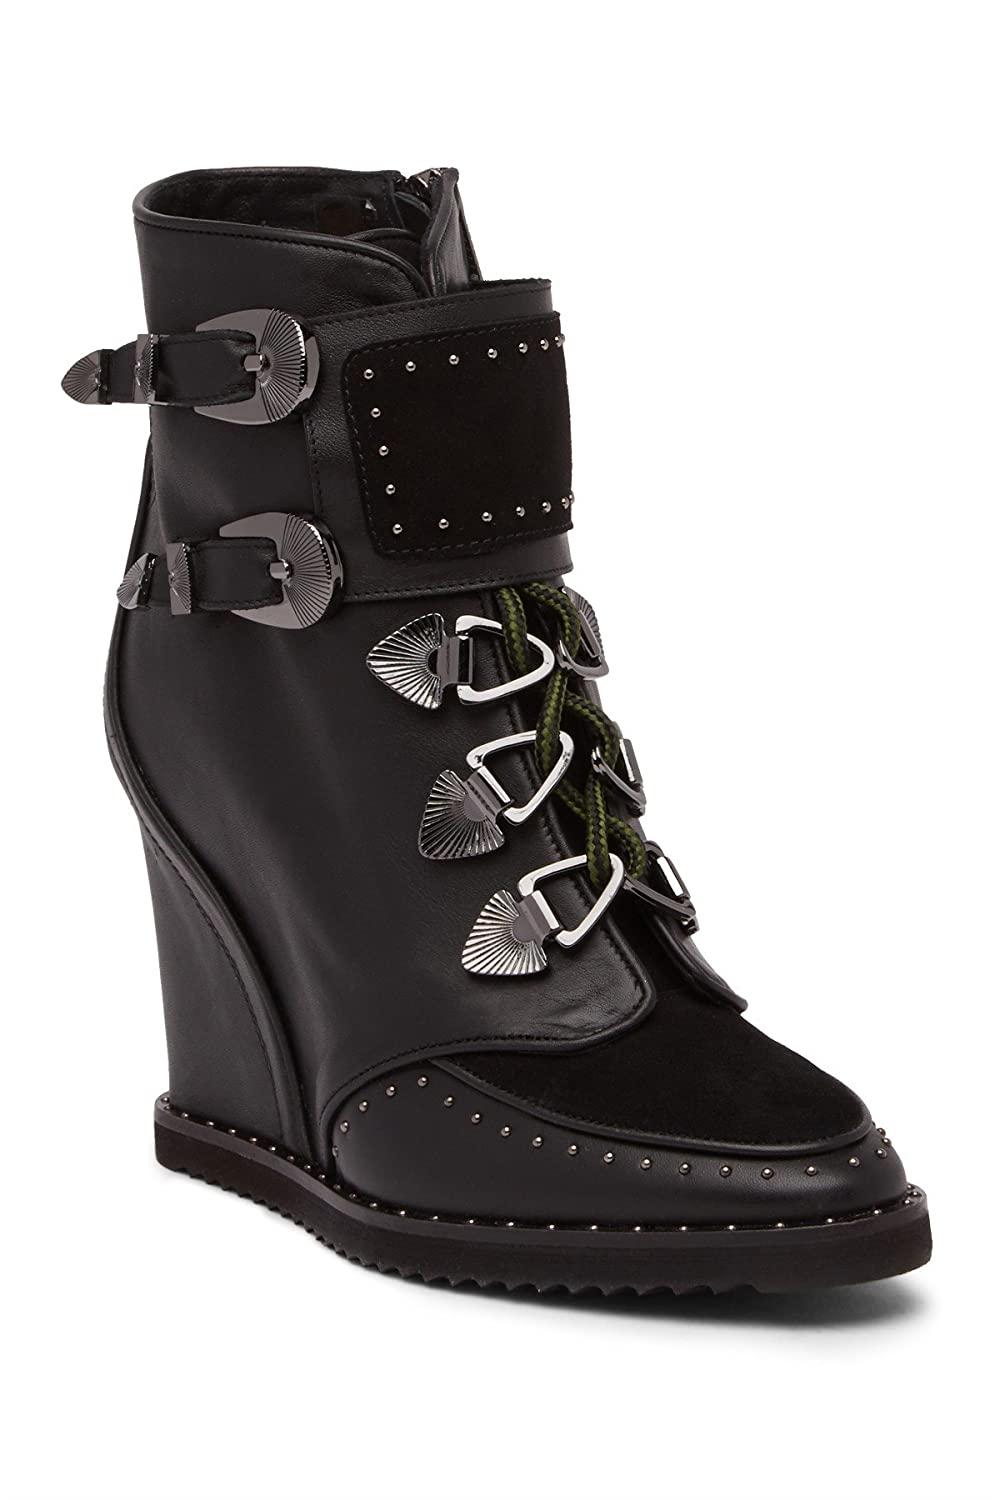 be3e568b8c3c9 Amazon.com | Ivy Kirzhner Scotty Black Leather Suede Lace Up Hiker  Concealed Wedge Ankle Boot (6) | Boots